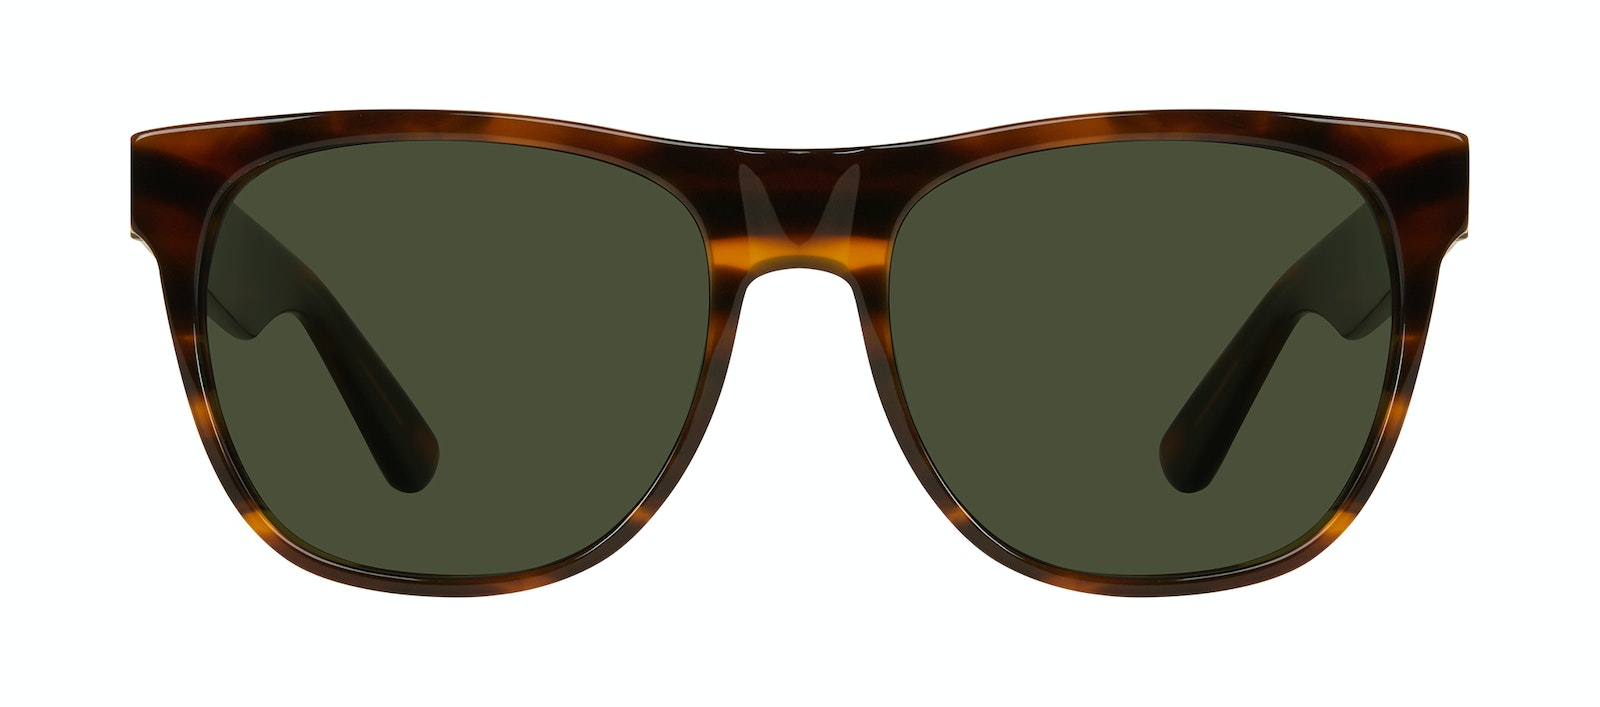 Affordable Fashion Glasses Square Sunglasses Men Palm Tortoise Front